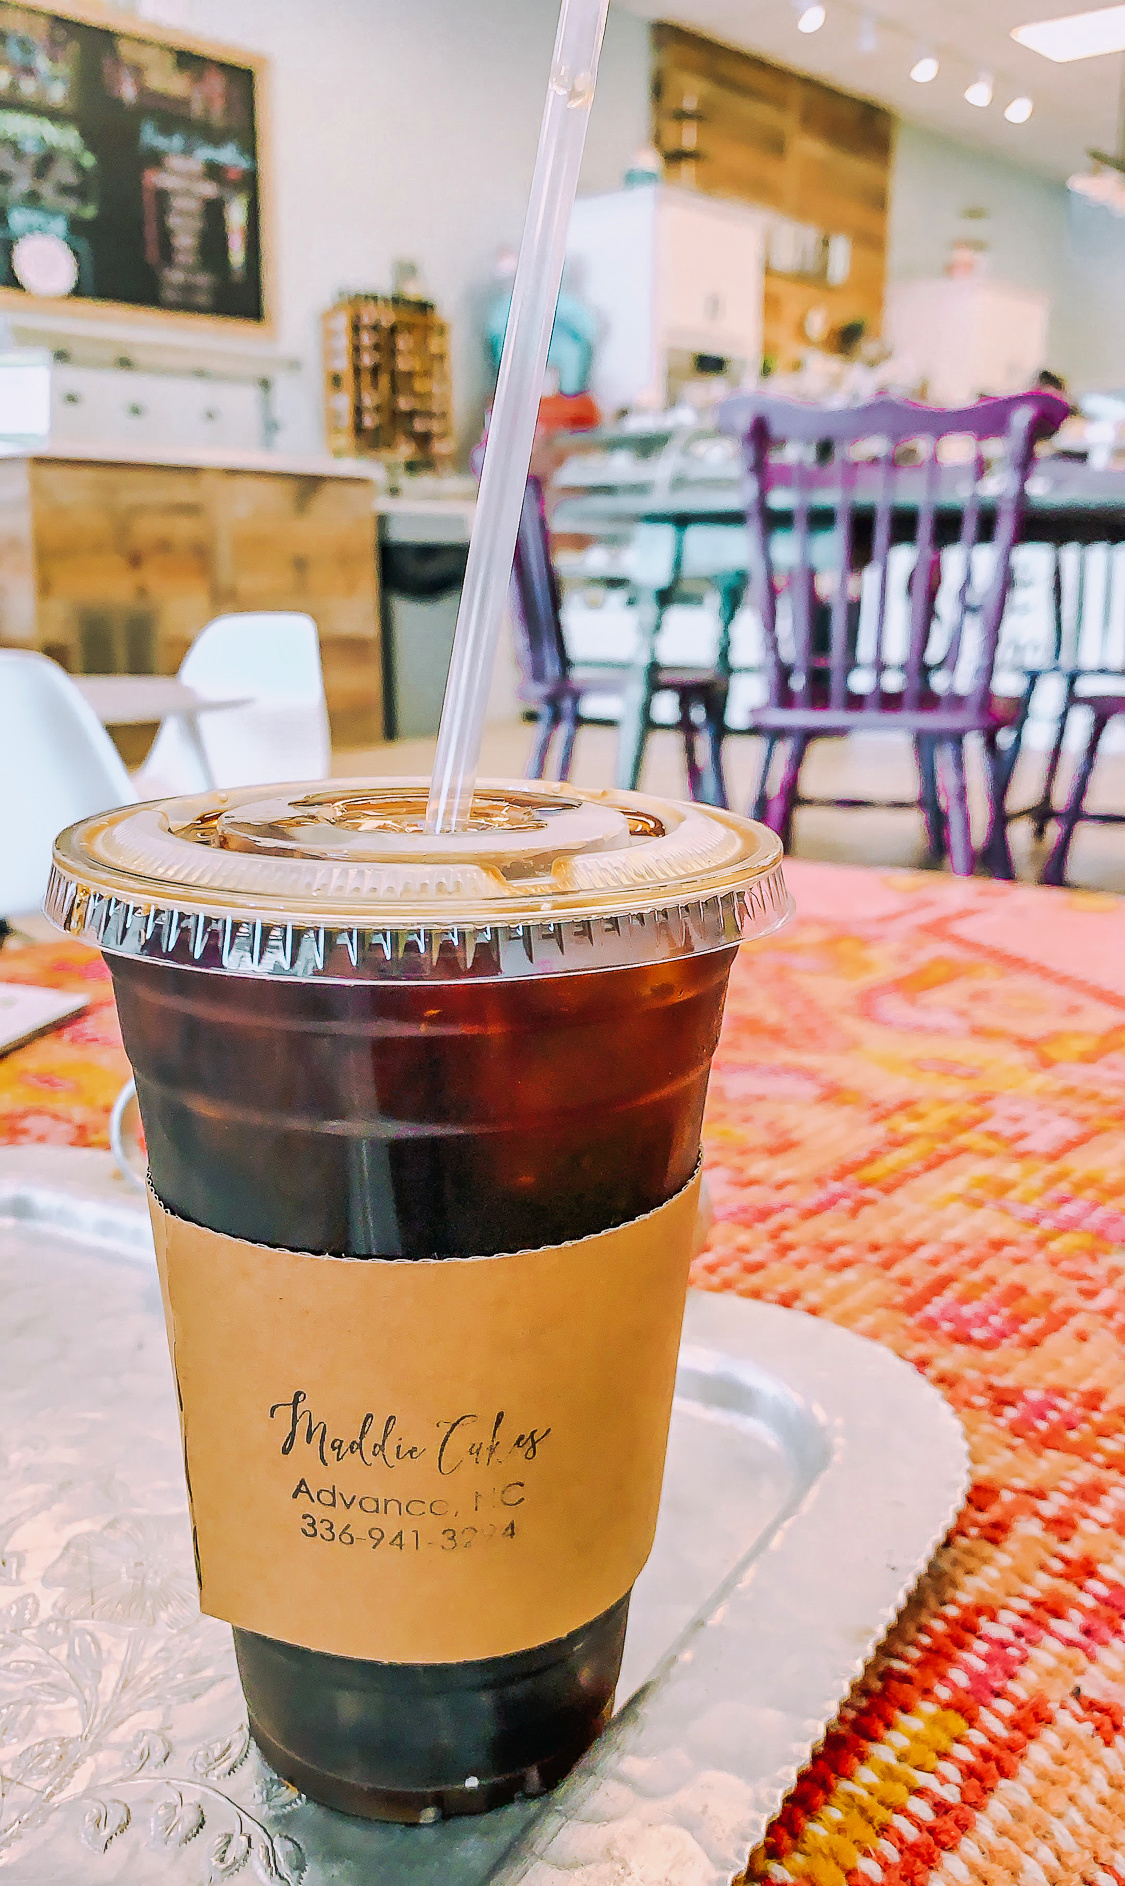 Maddie cakes, Winston Salem, north Carolina, iced coffee, cafe, bakery, cute , north Carolina